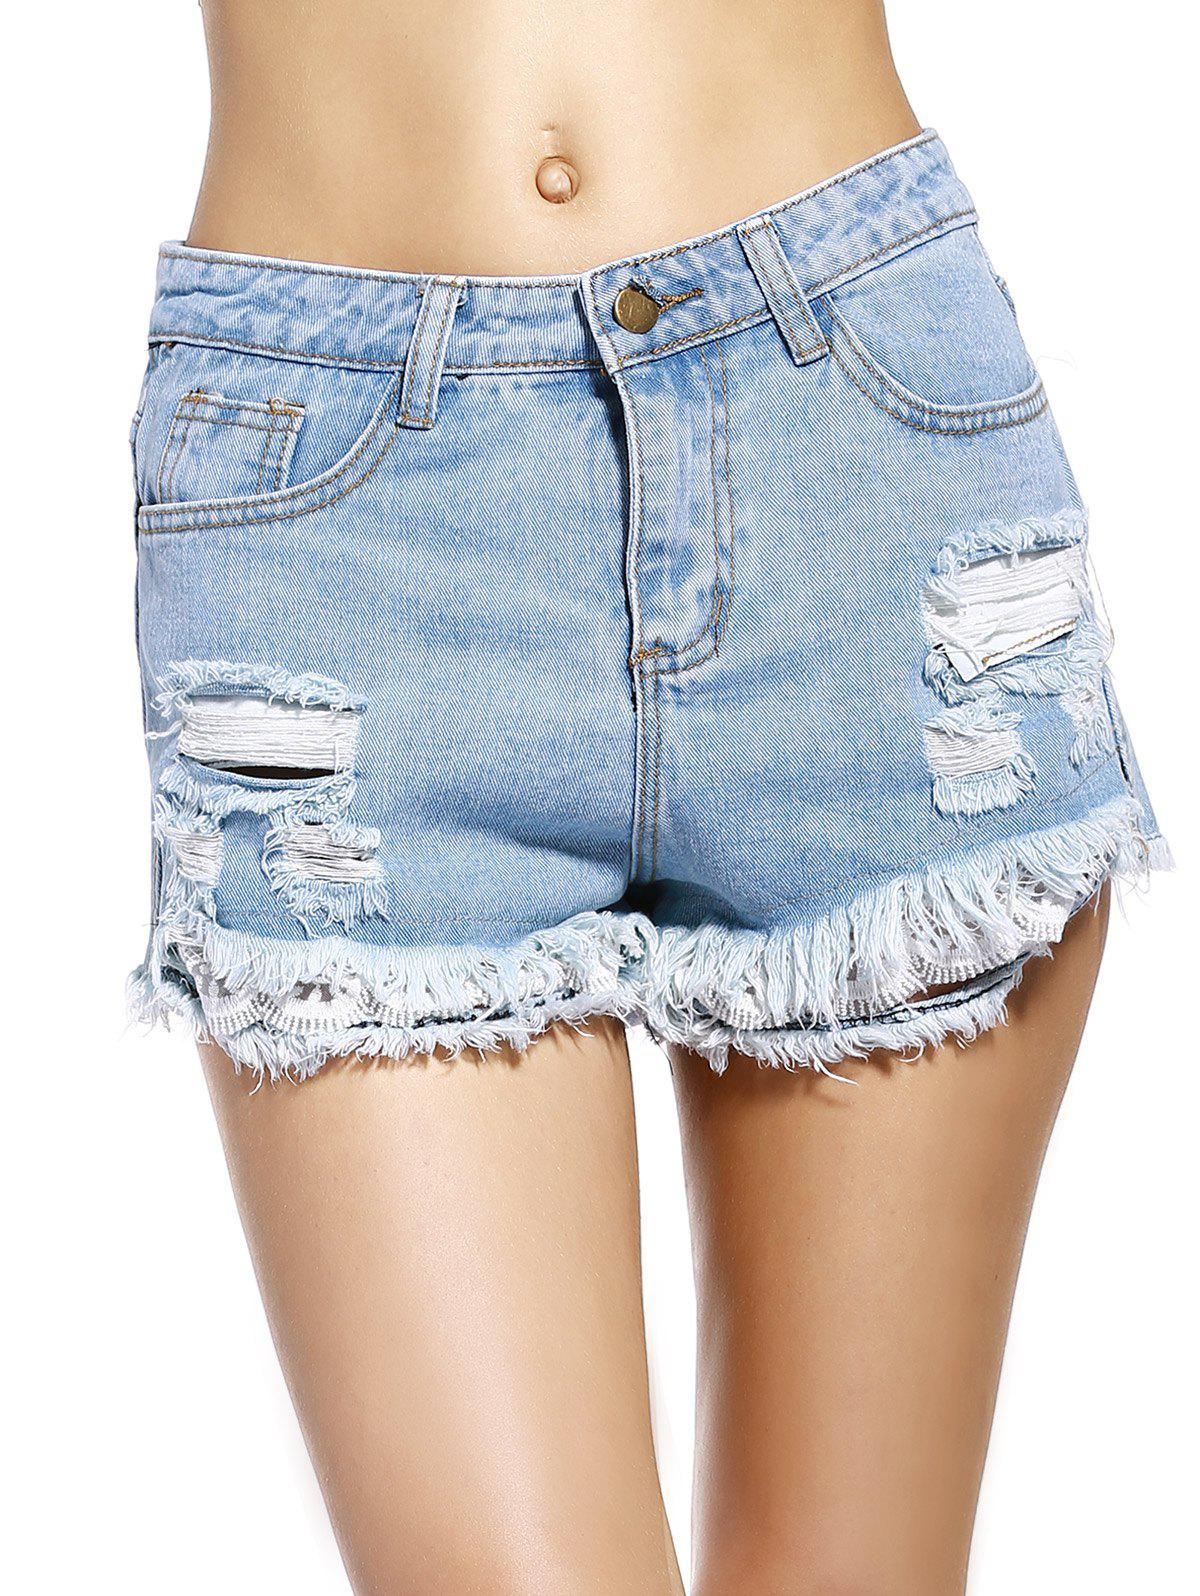 Chic Fringed Pocket Design Broken Hole Women's Denim Shorts